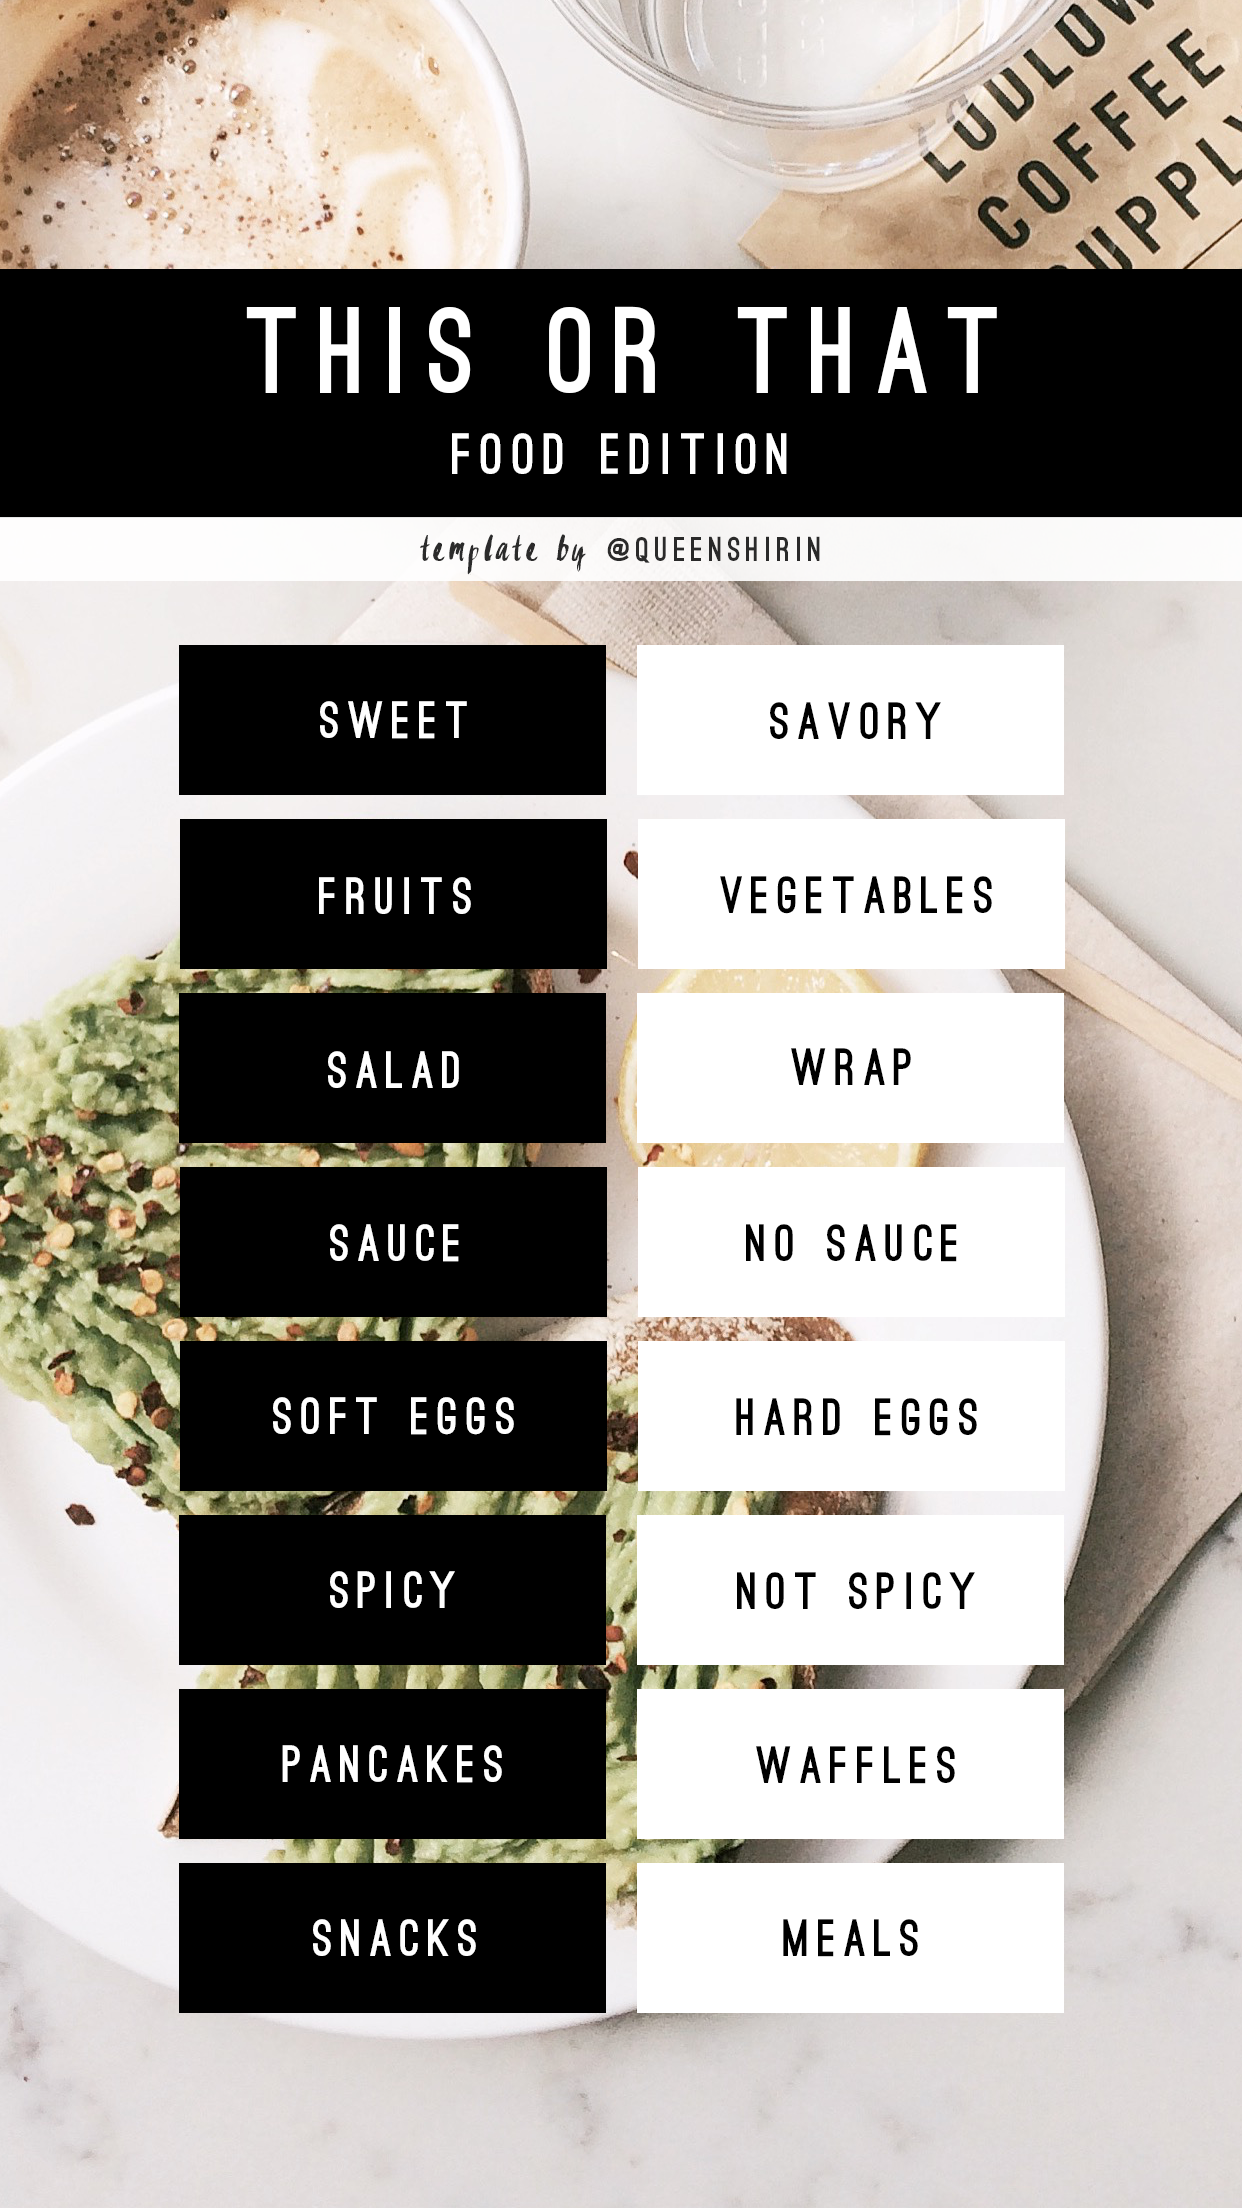 Instagram Story Template Questions: This or That Food Edition | Free ...